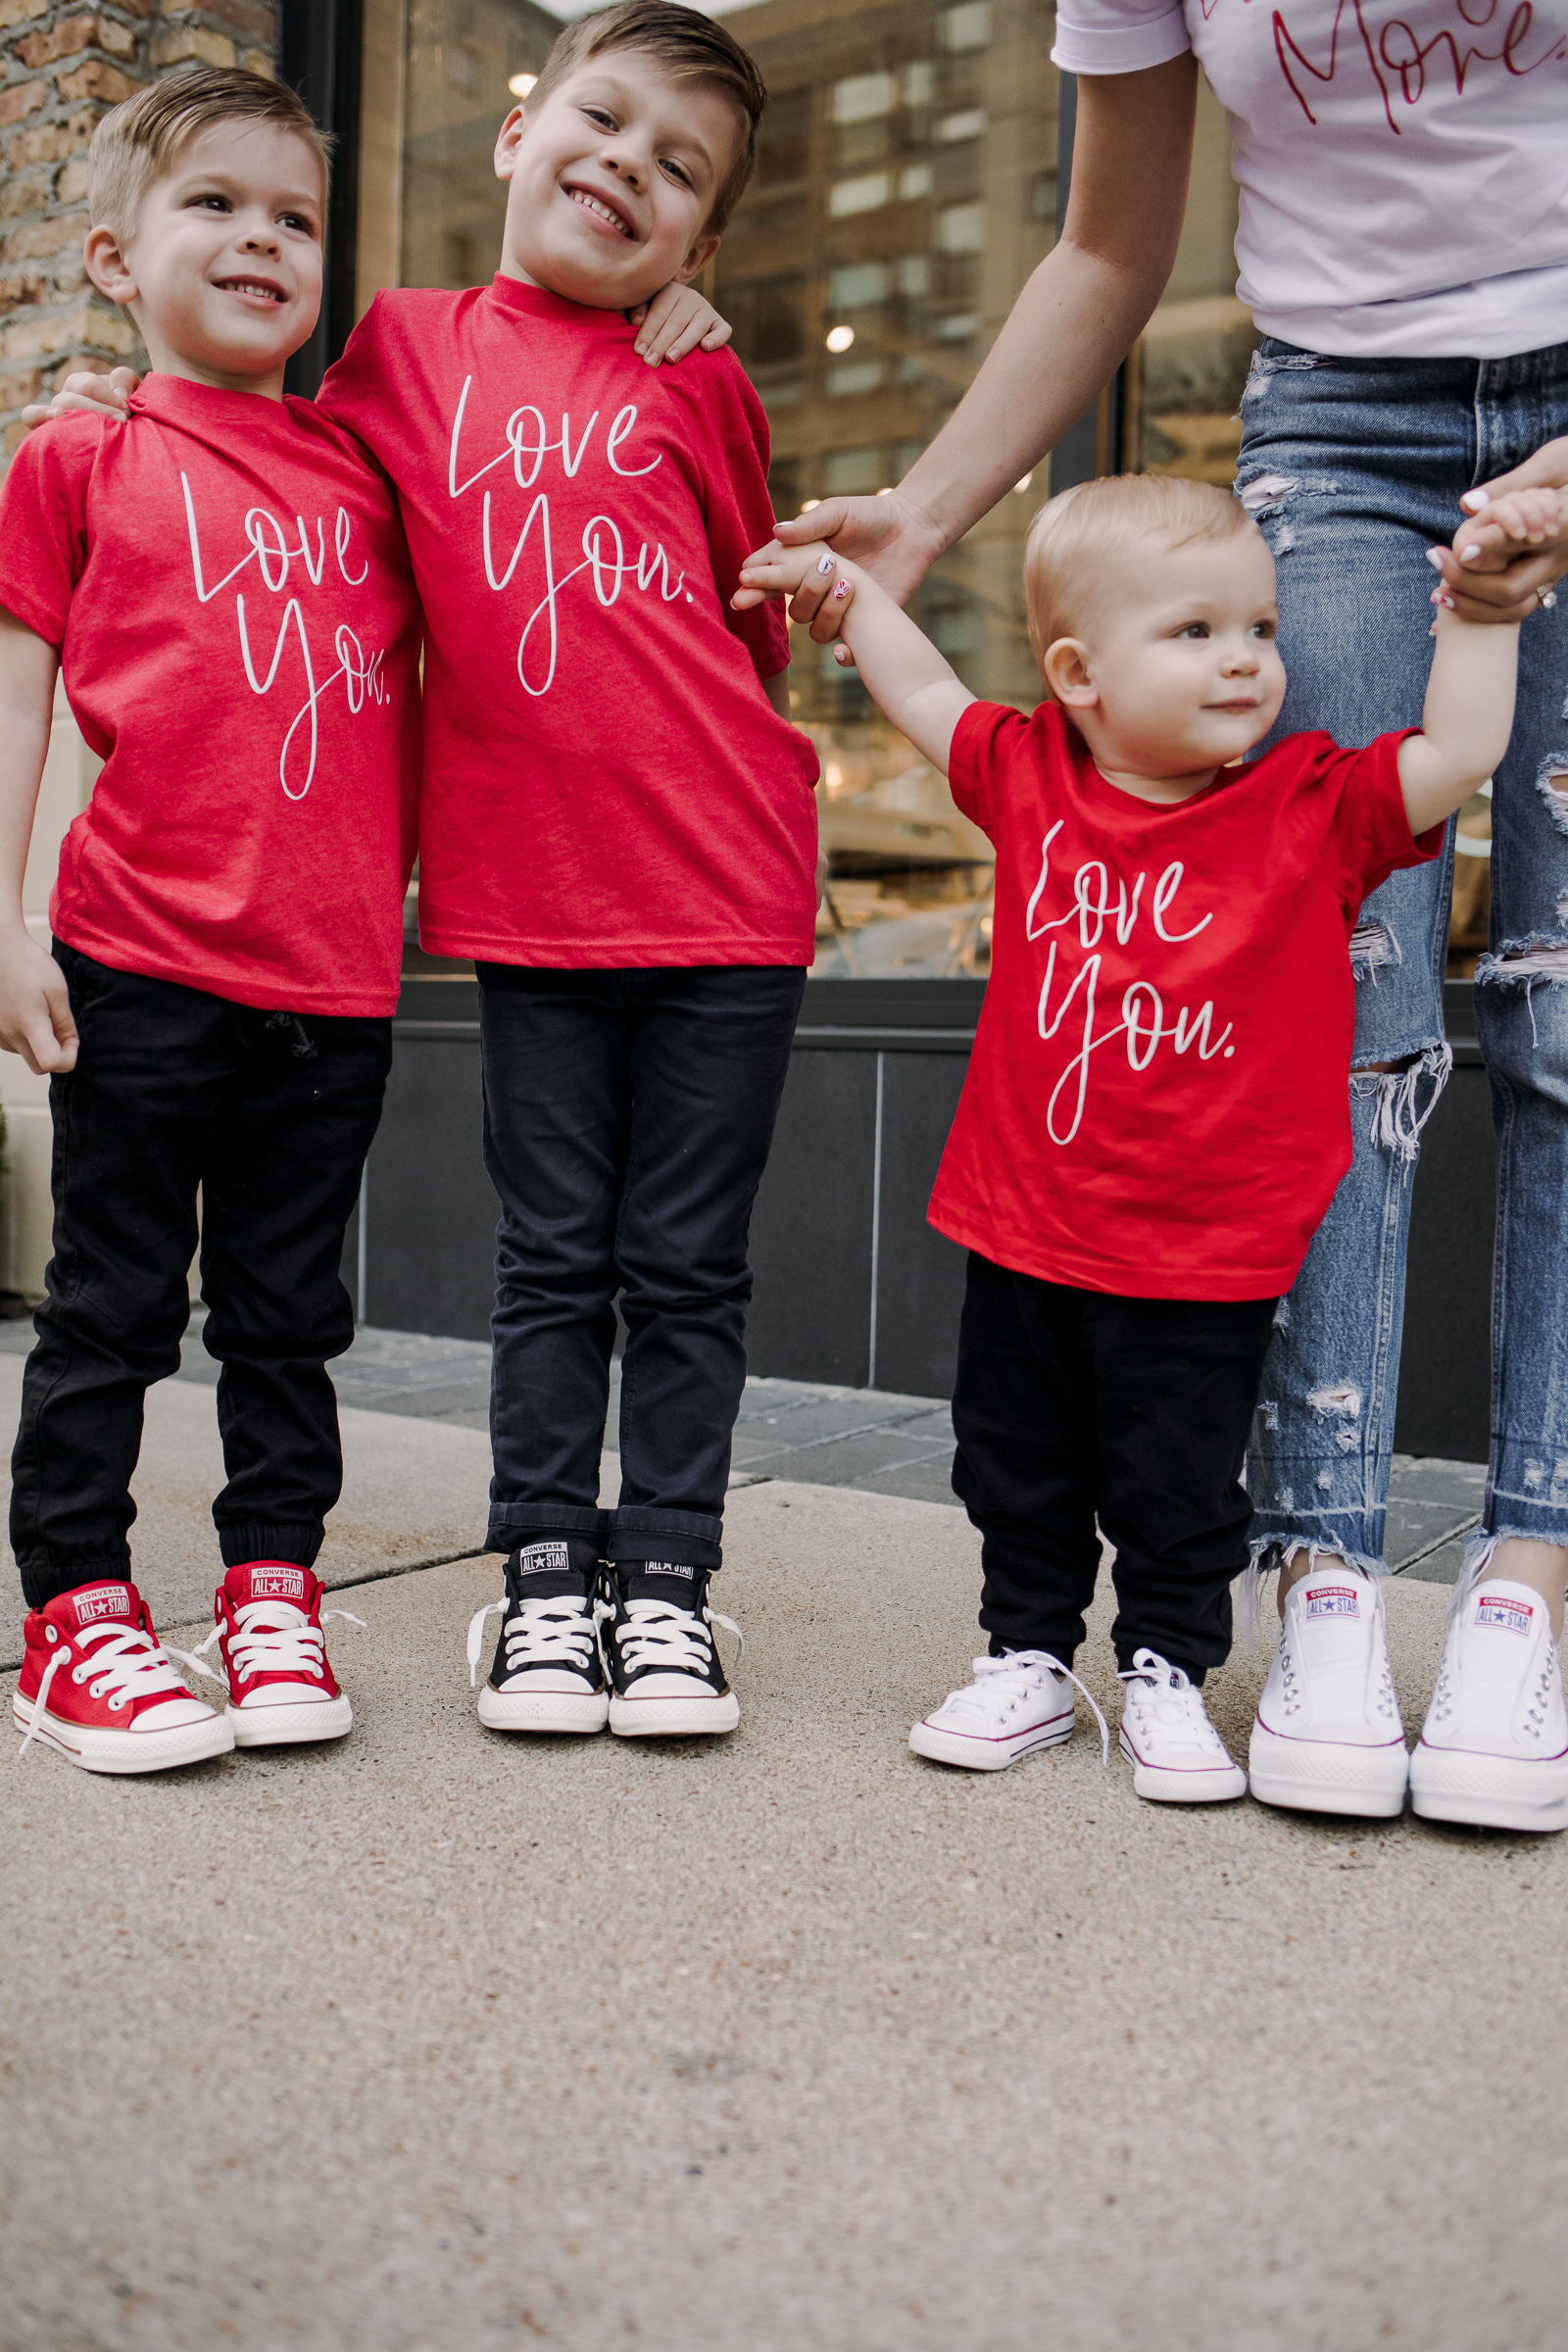 Houston fashion blogger Uptown with Elly Brown wears matching converse with her sons for a mommy and son matching outfit